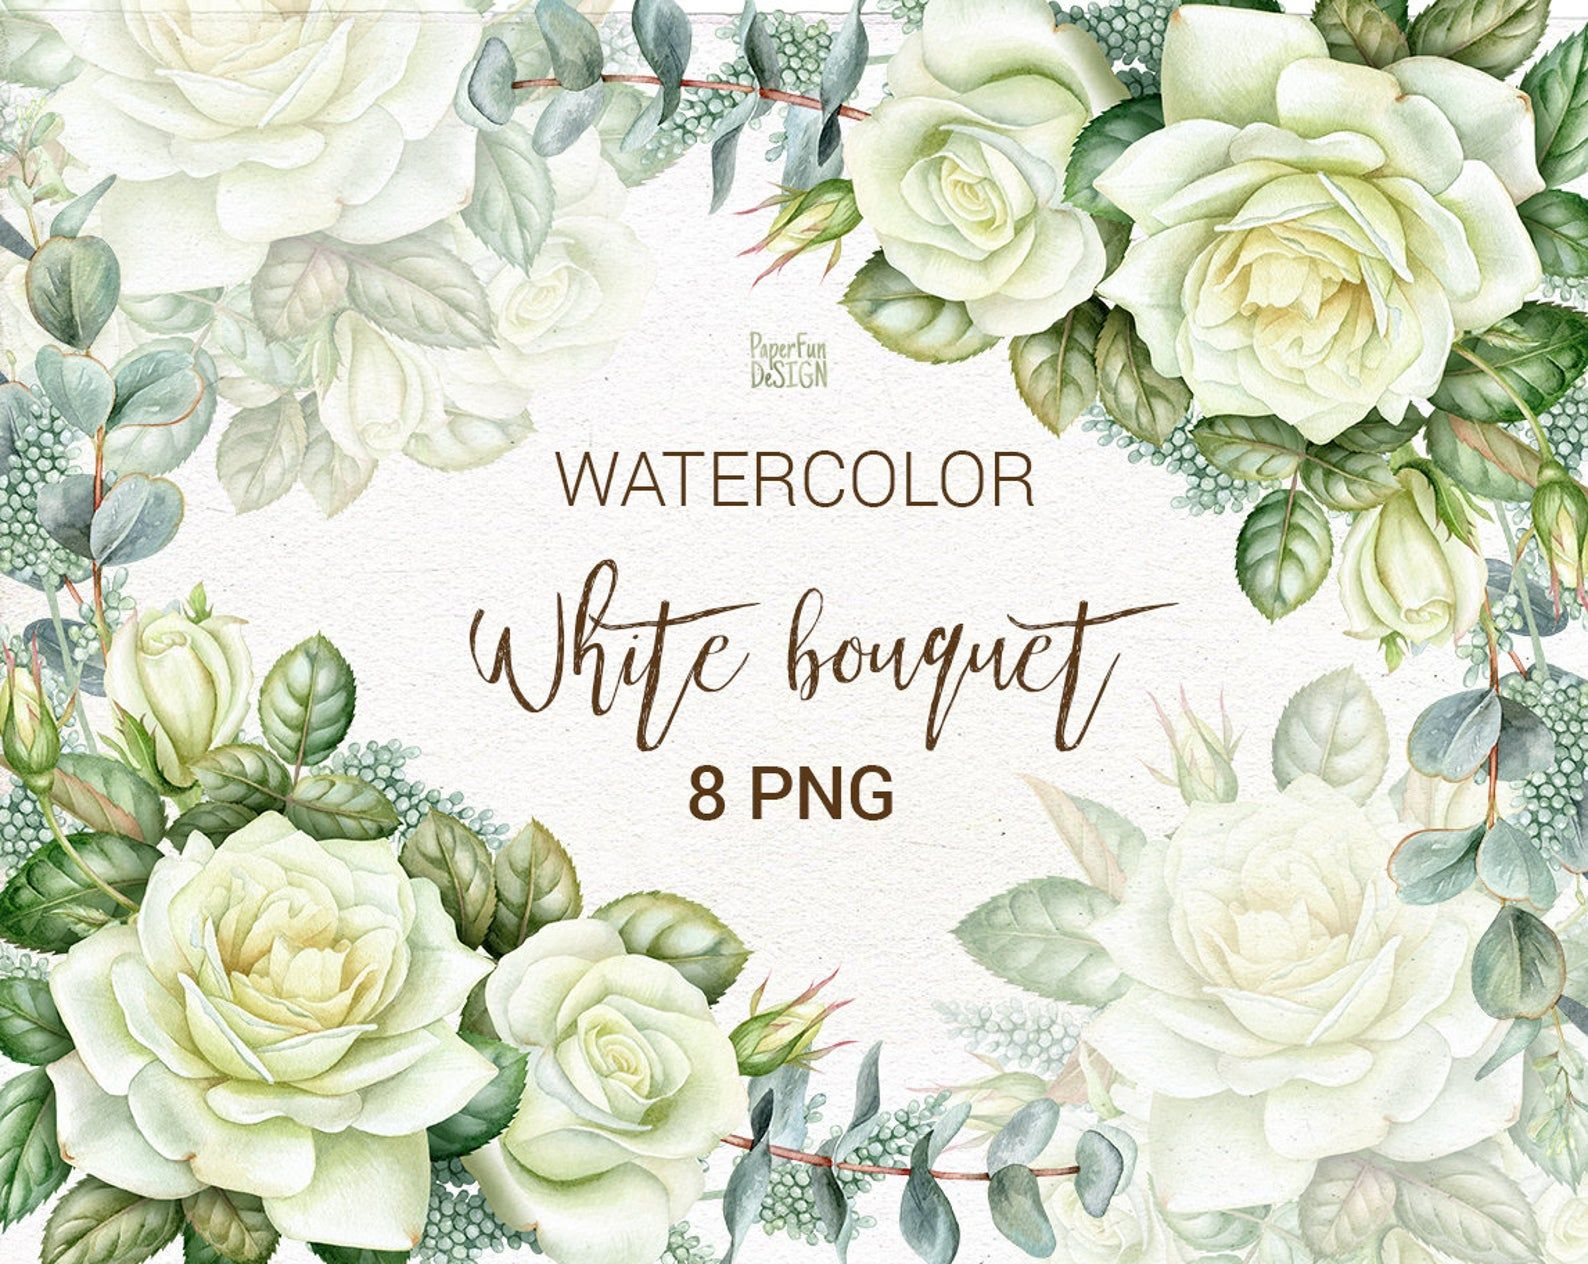 Watercolor Wedding Bouquets With White Roses And Eucalyptus Floral Christmas Corner Frame Wreath Individual Png Commercial Use Clip Art Watercolor Wedding White Roses